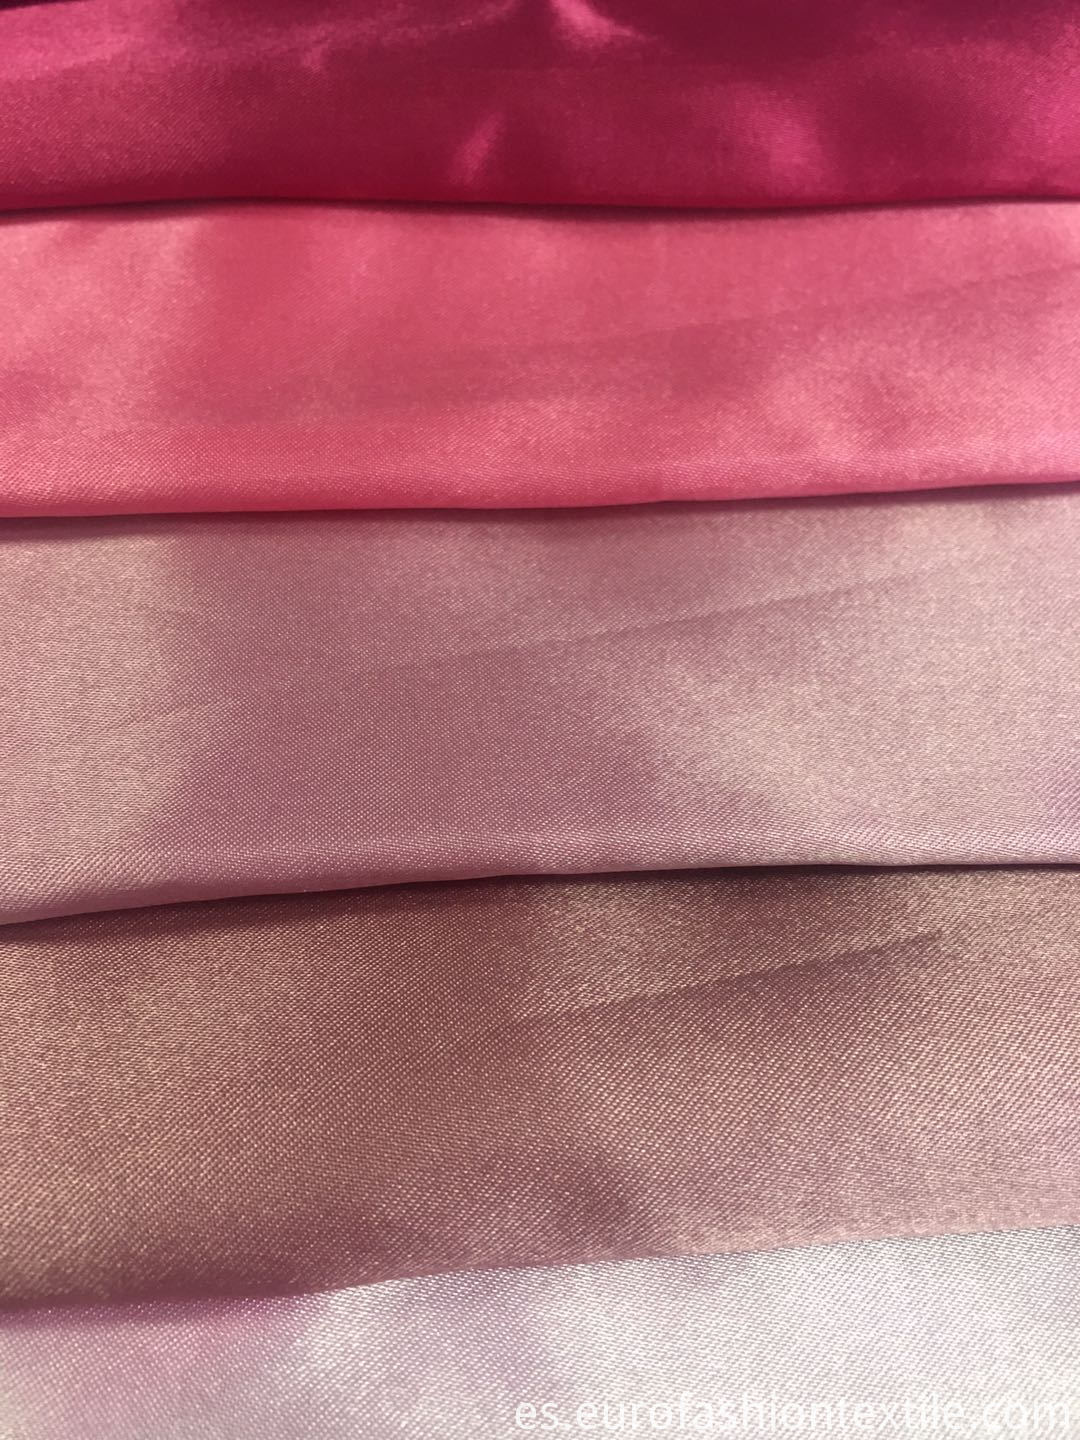 Poly Charmeuse Satin